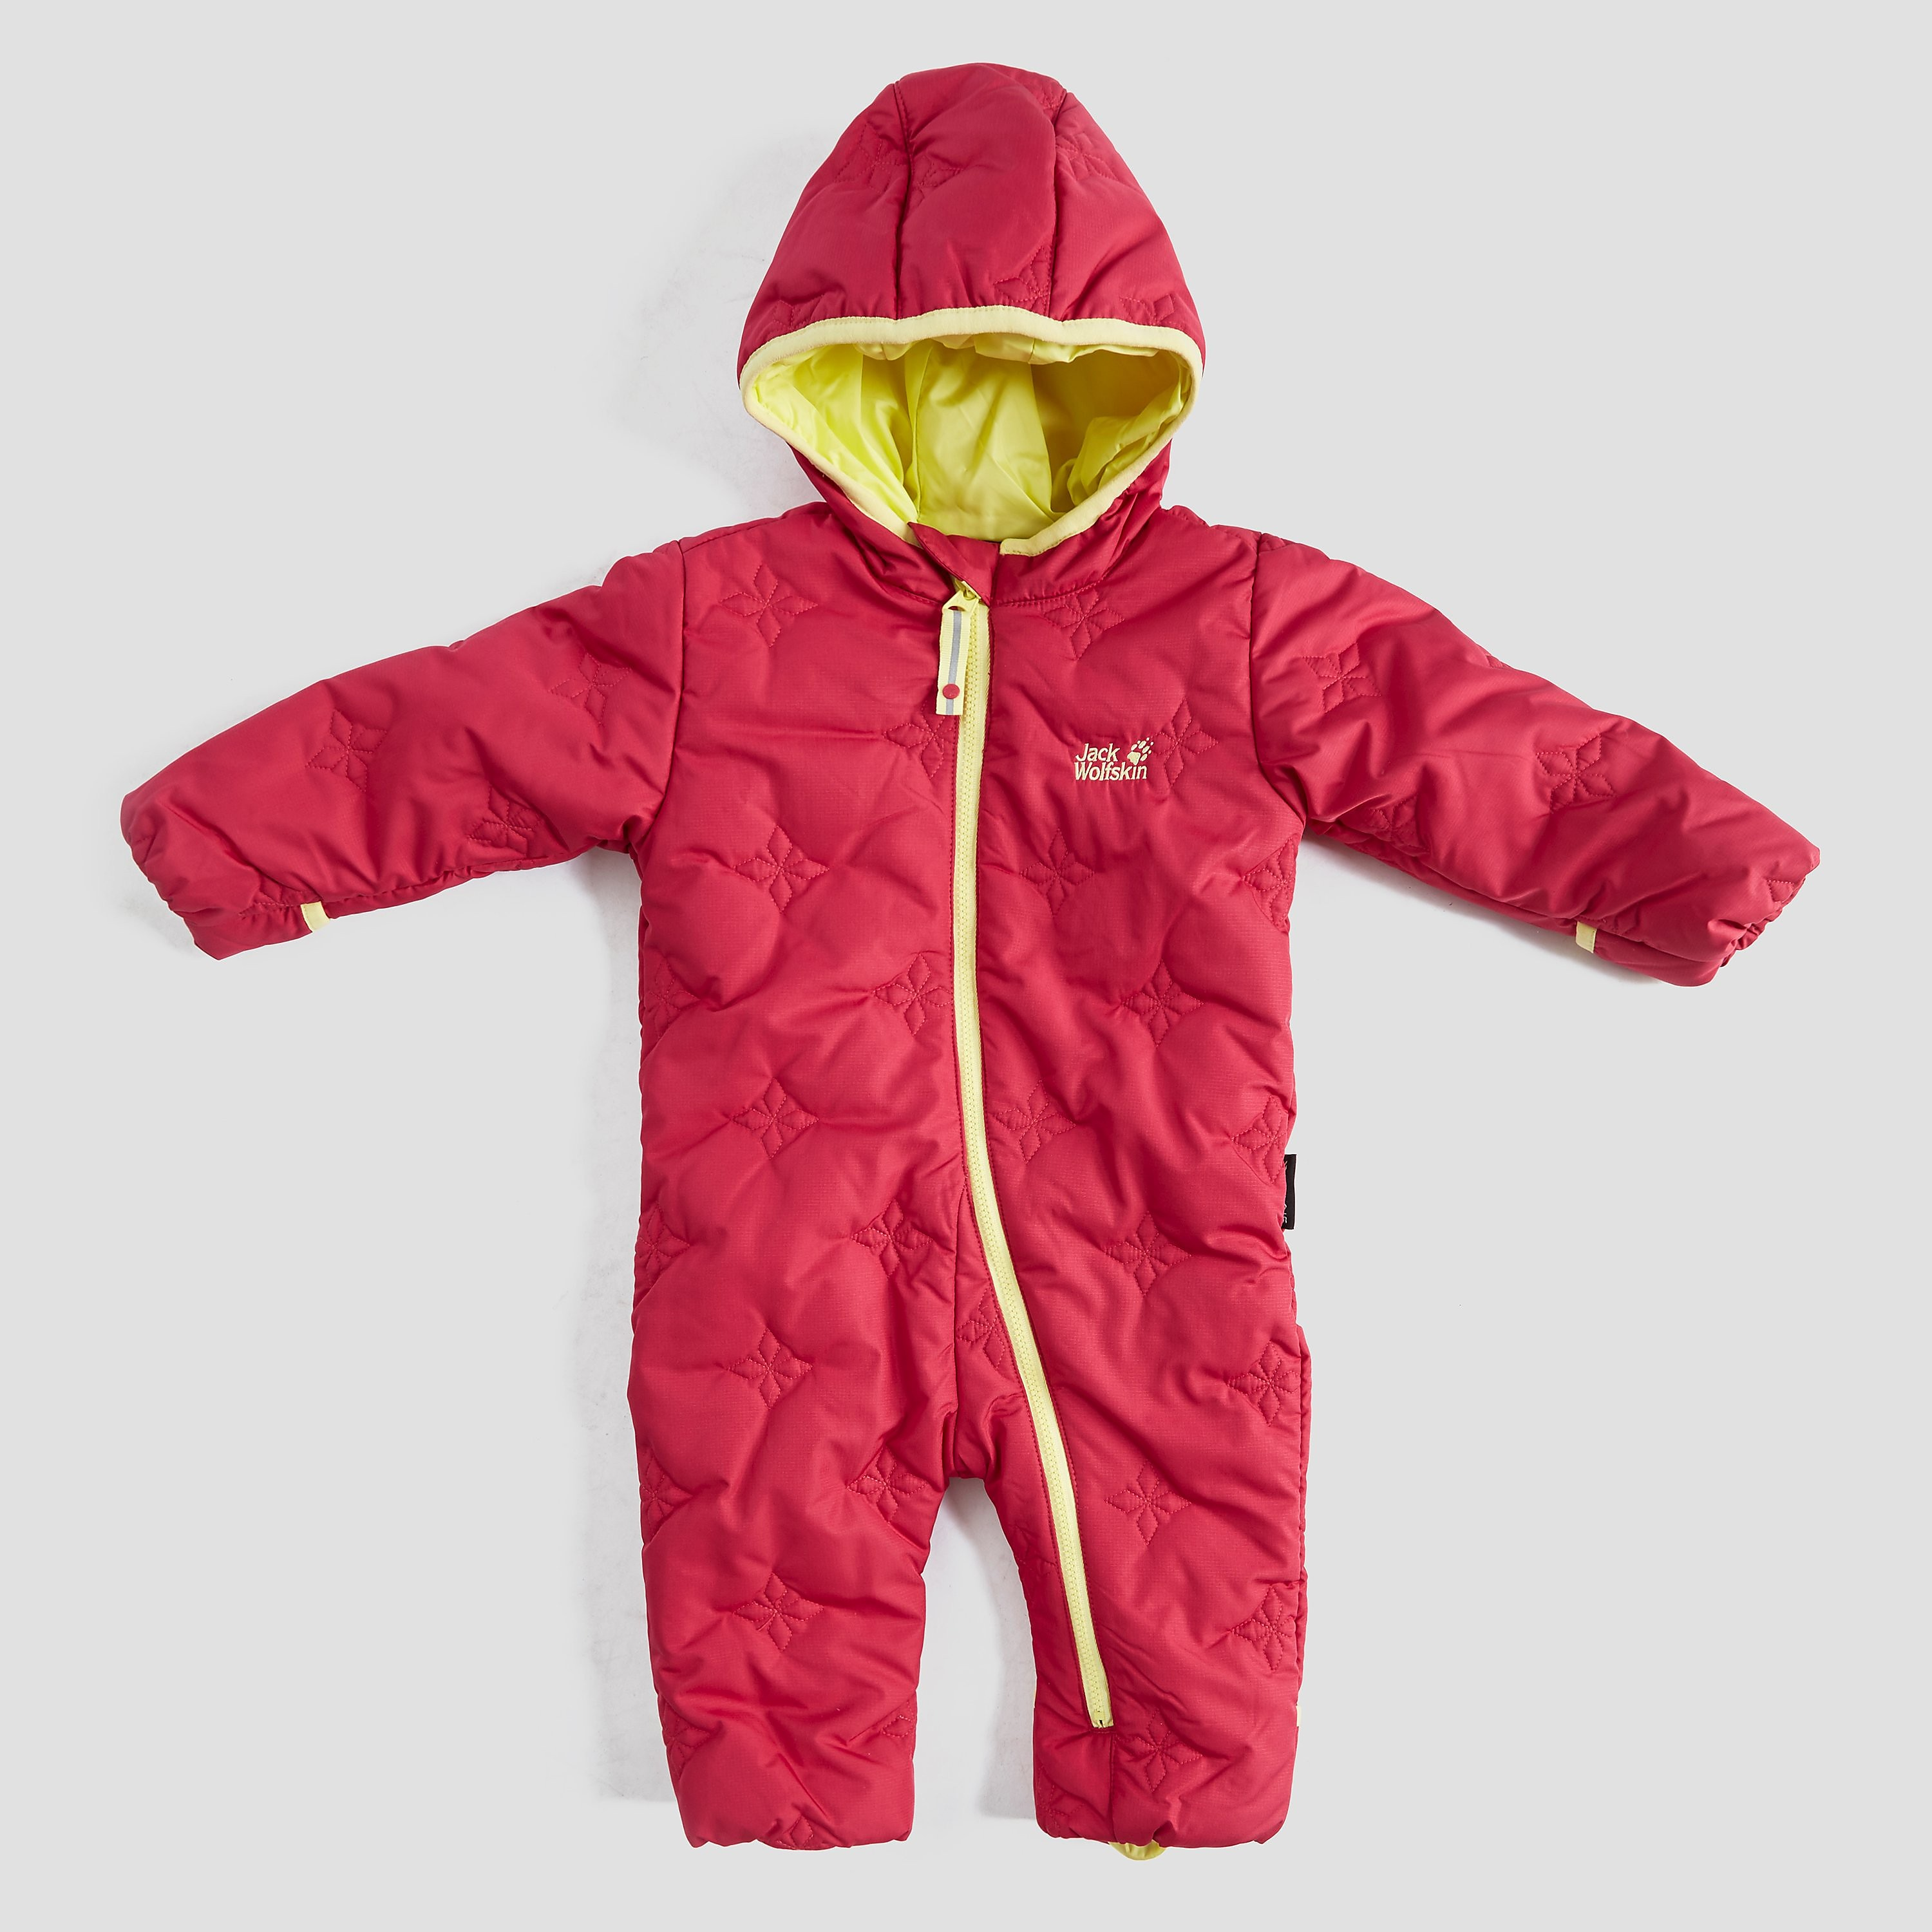 JACK WOLFSKIN Ice Crystal Infant's Overalls